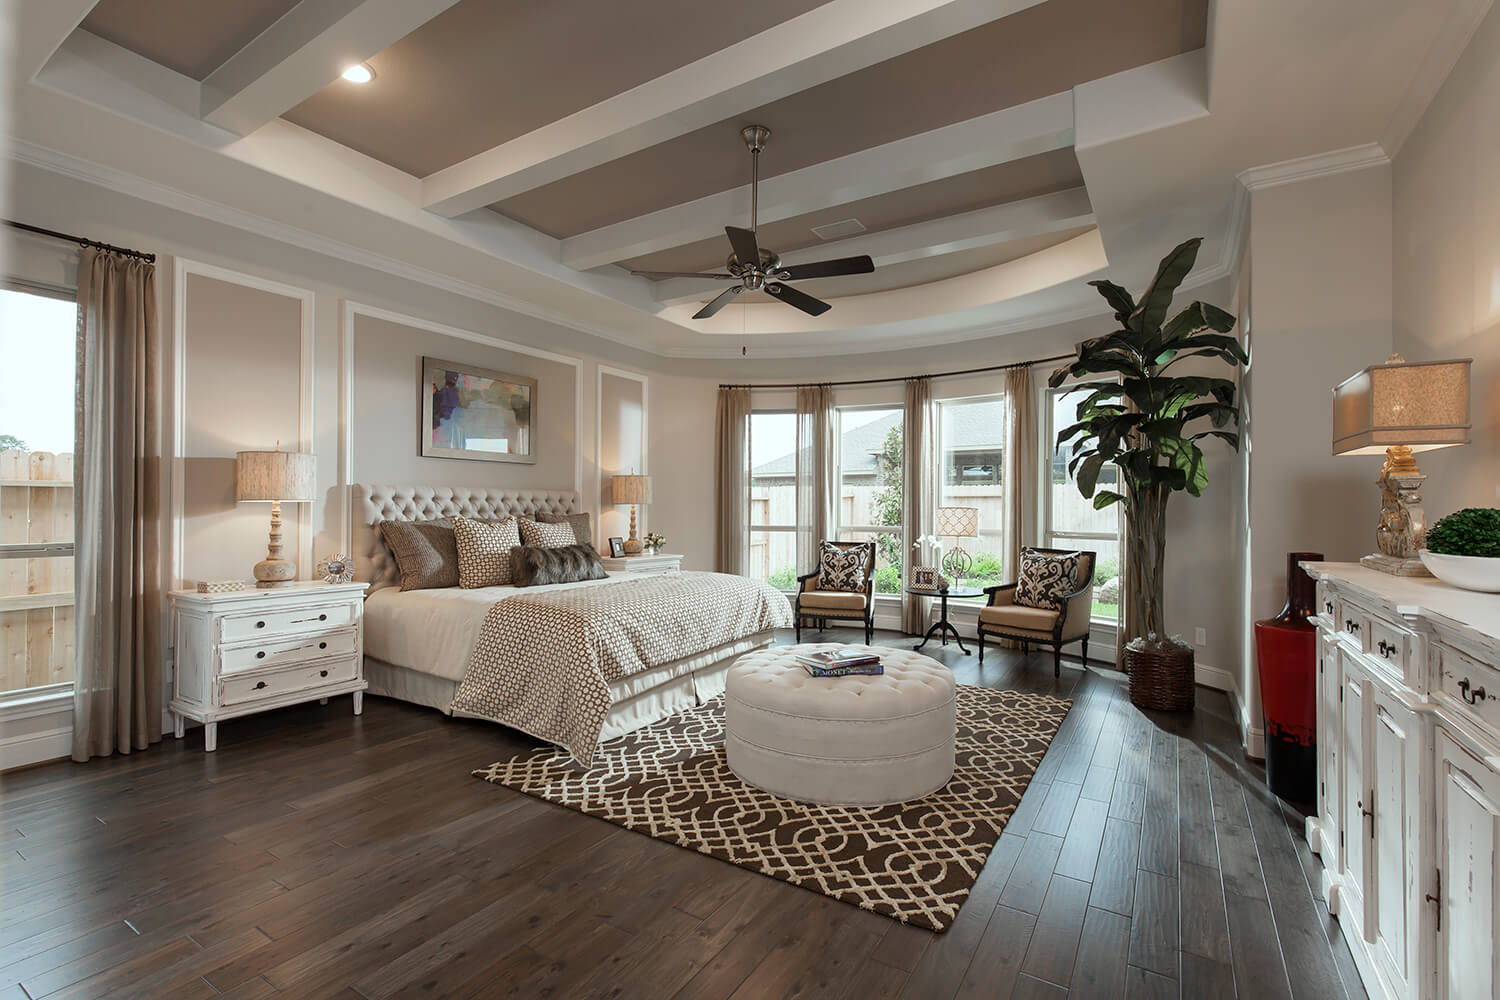 Bedroom 1 - The Katy (8264 Plan)